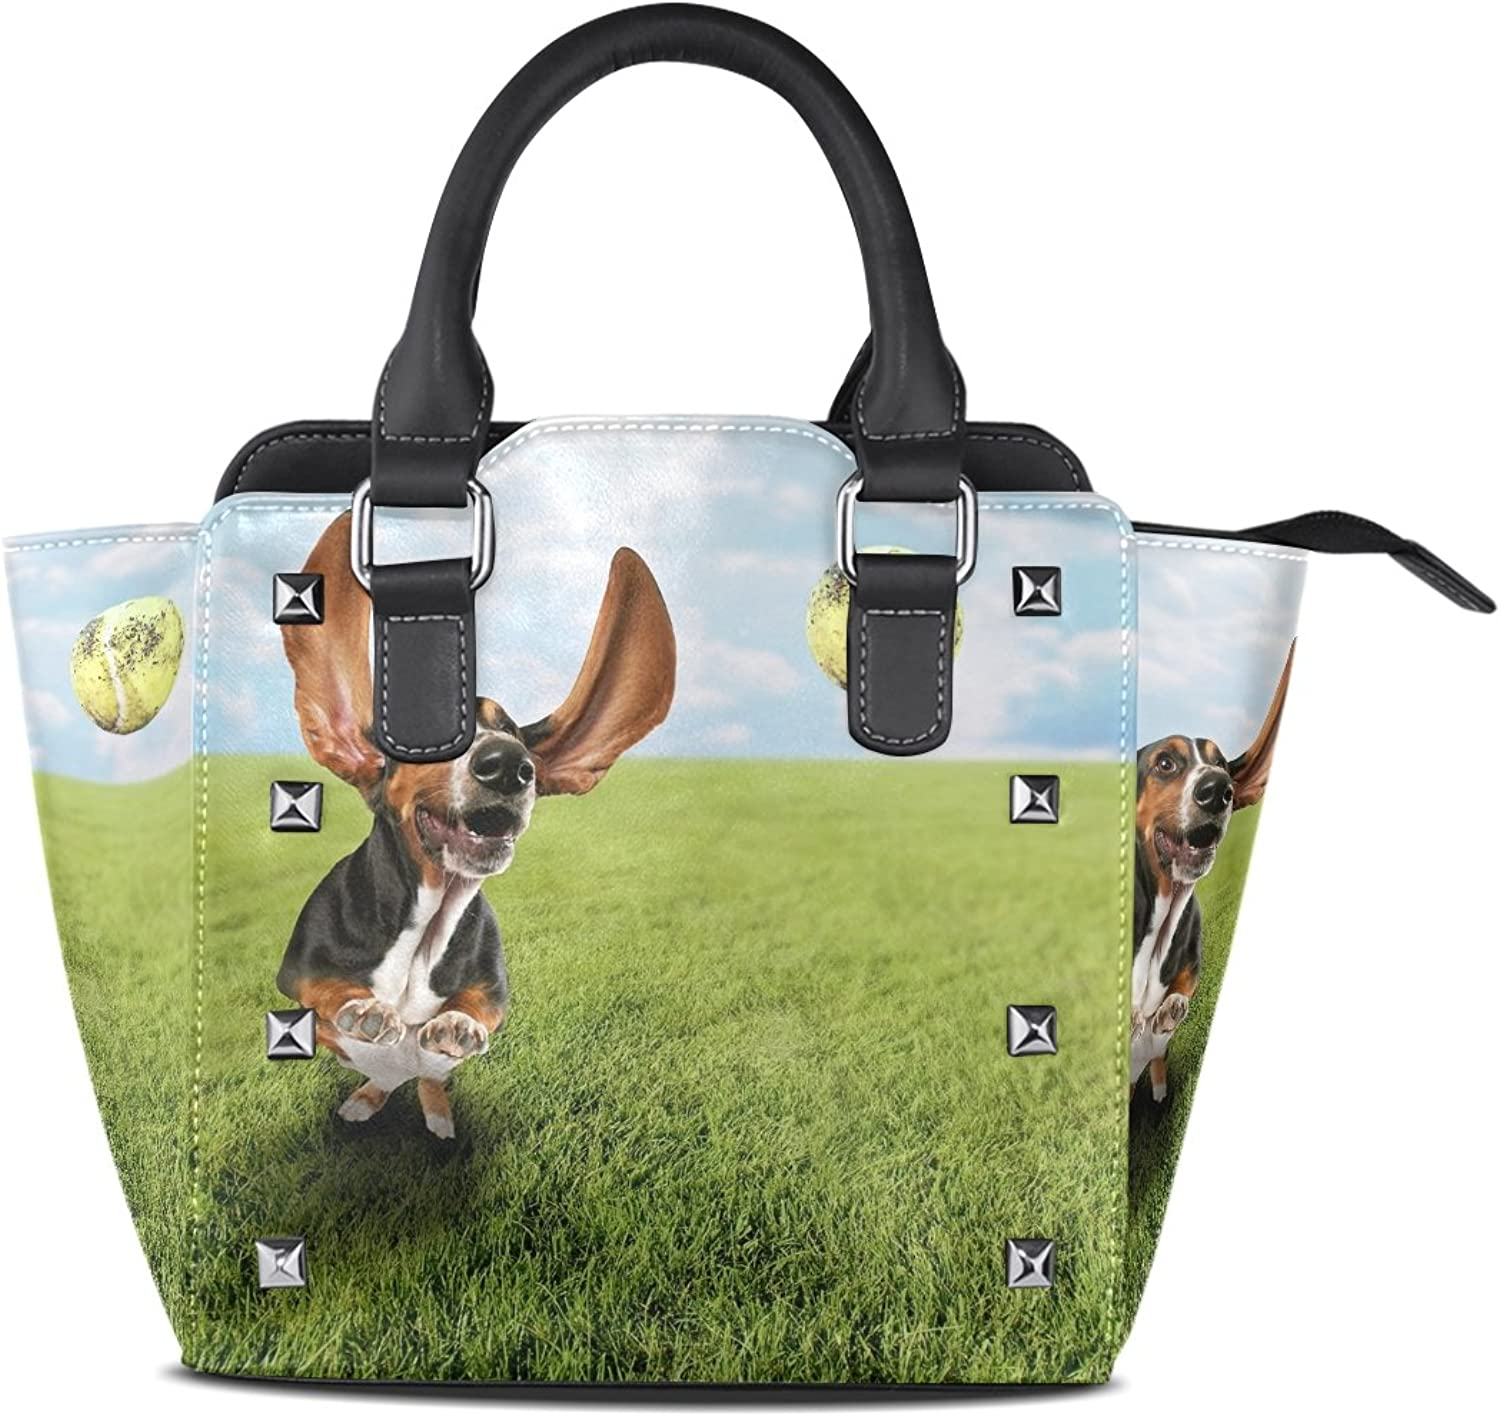 Sunlome Basset Hound Dog Chasing Tennis Ball Print Handbags Women's PU Leather Top-Handle Shoulder Bags